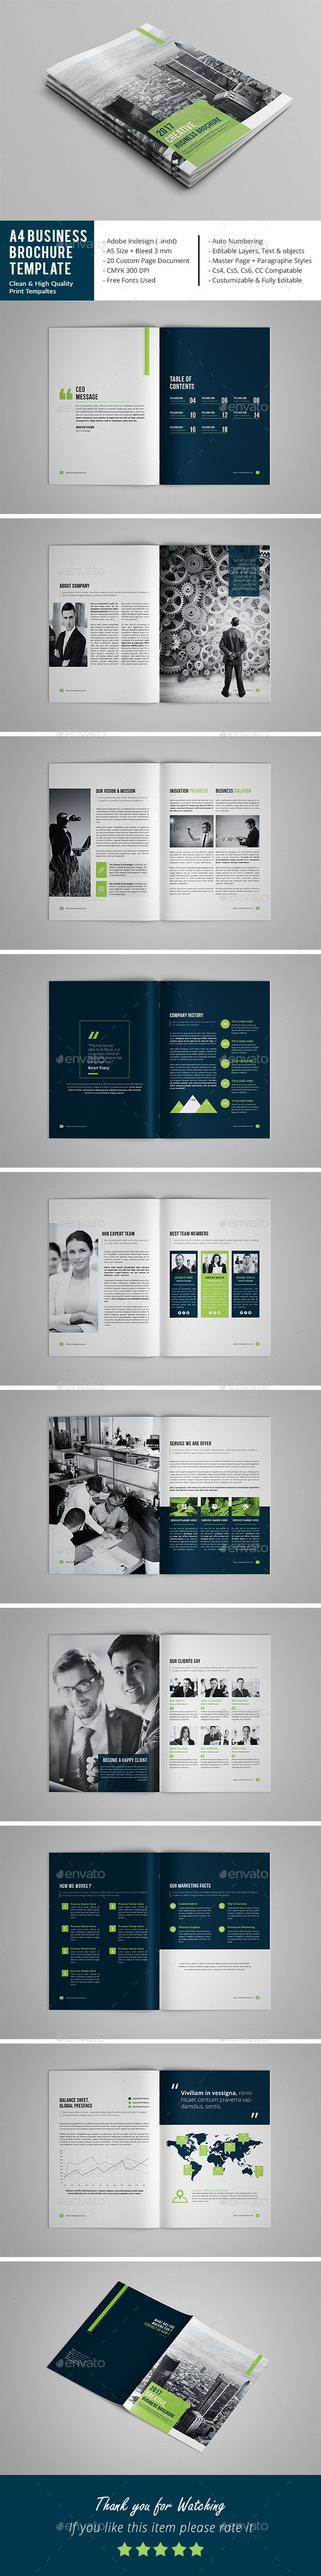 A4 Business Brochure Template InDesign INDD